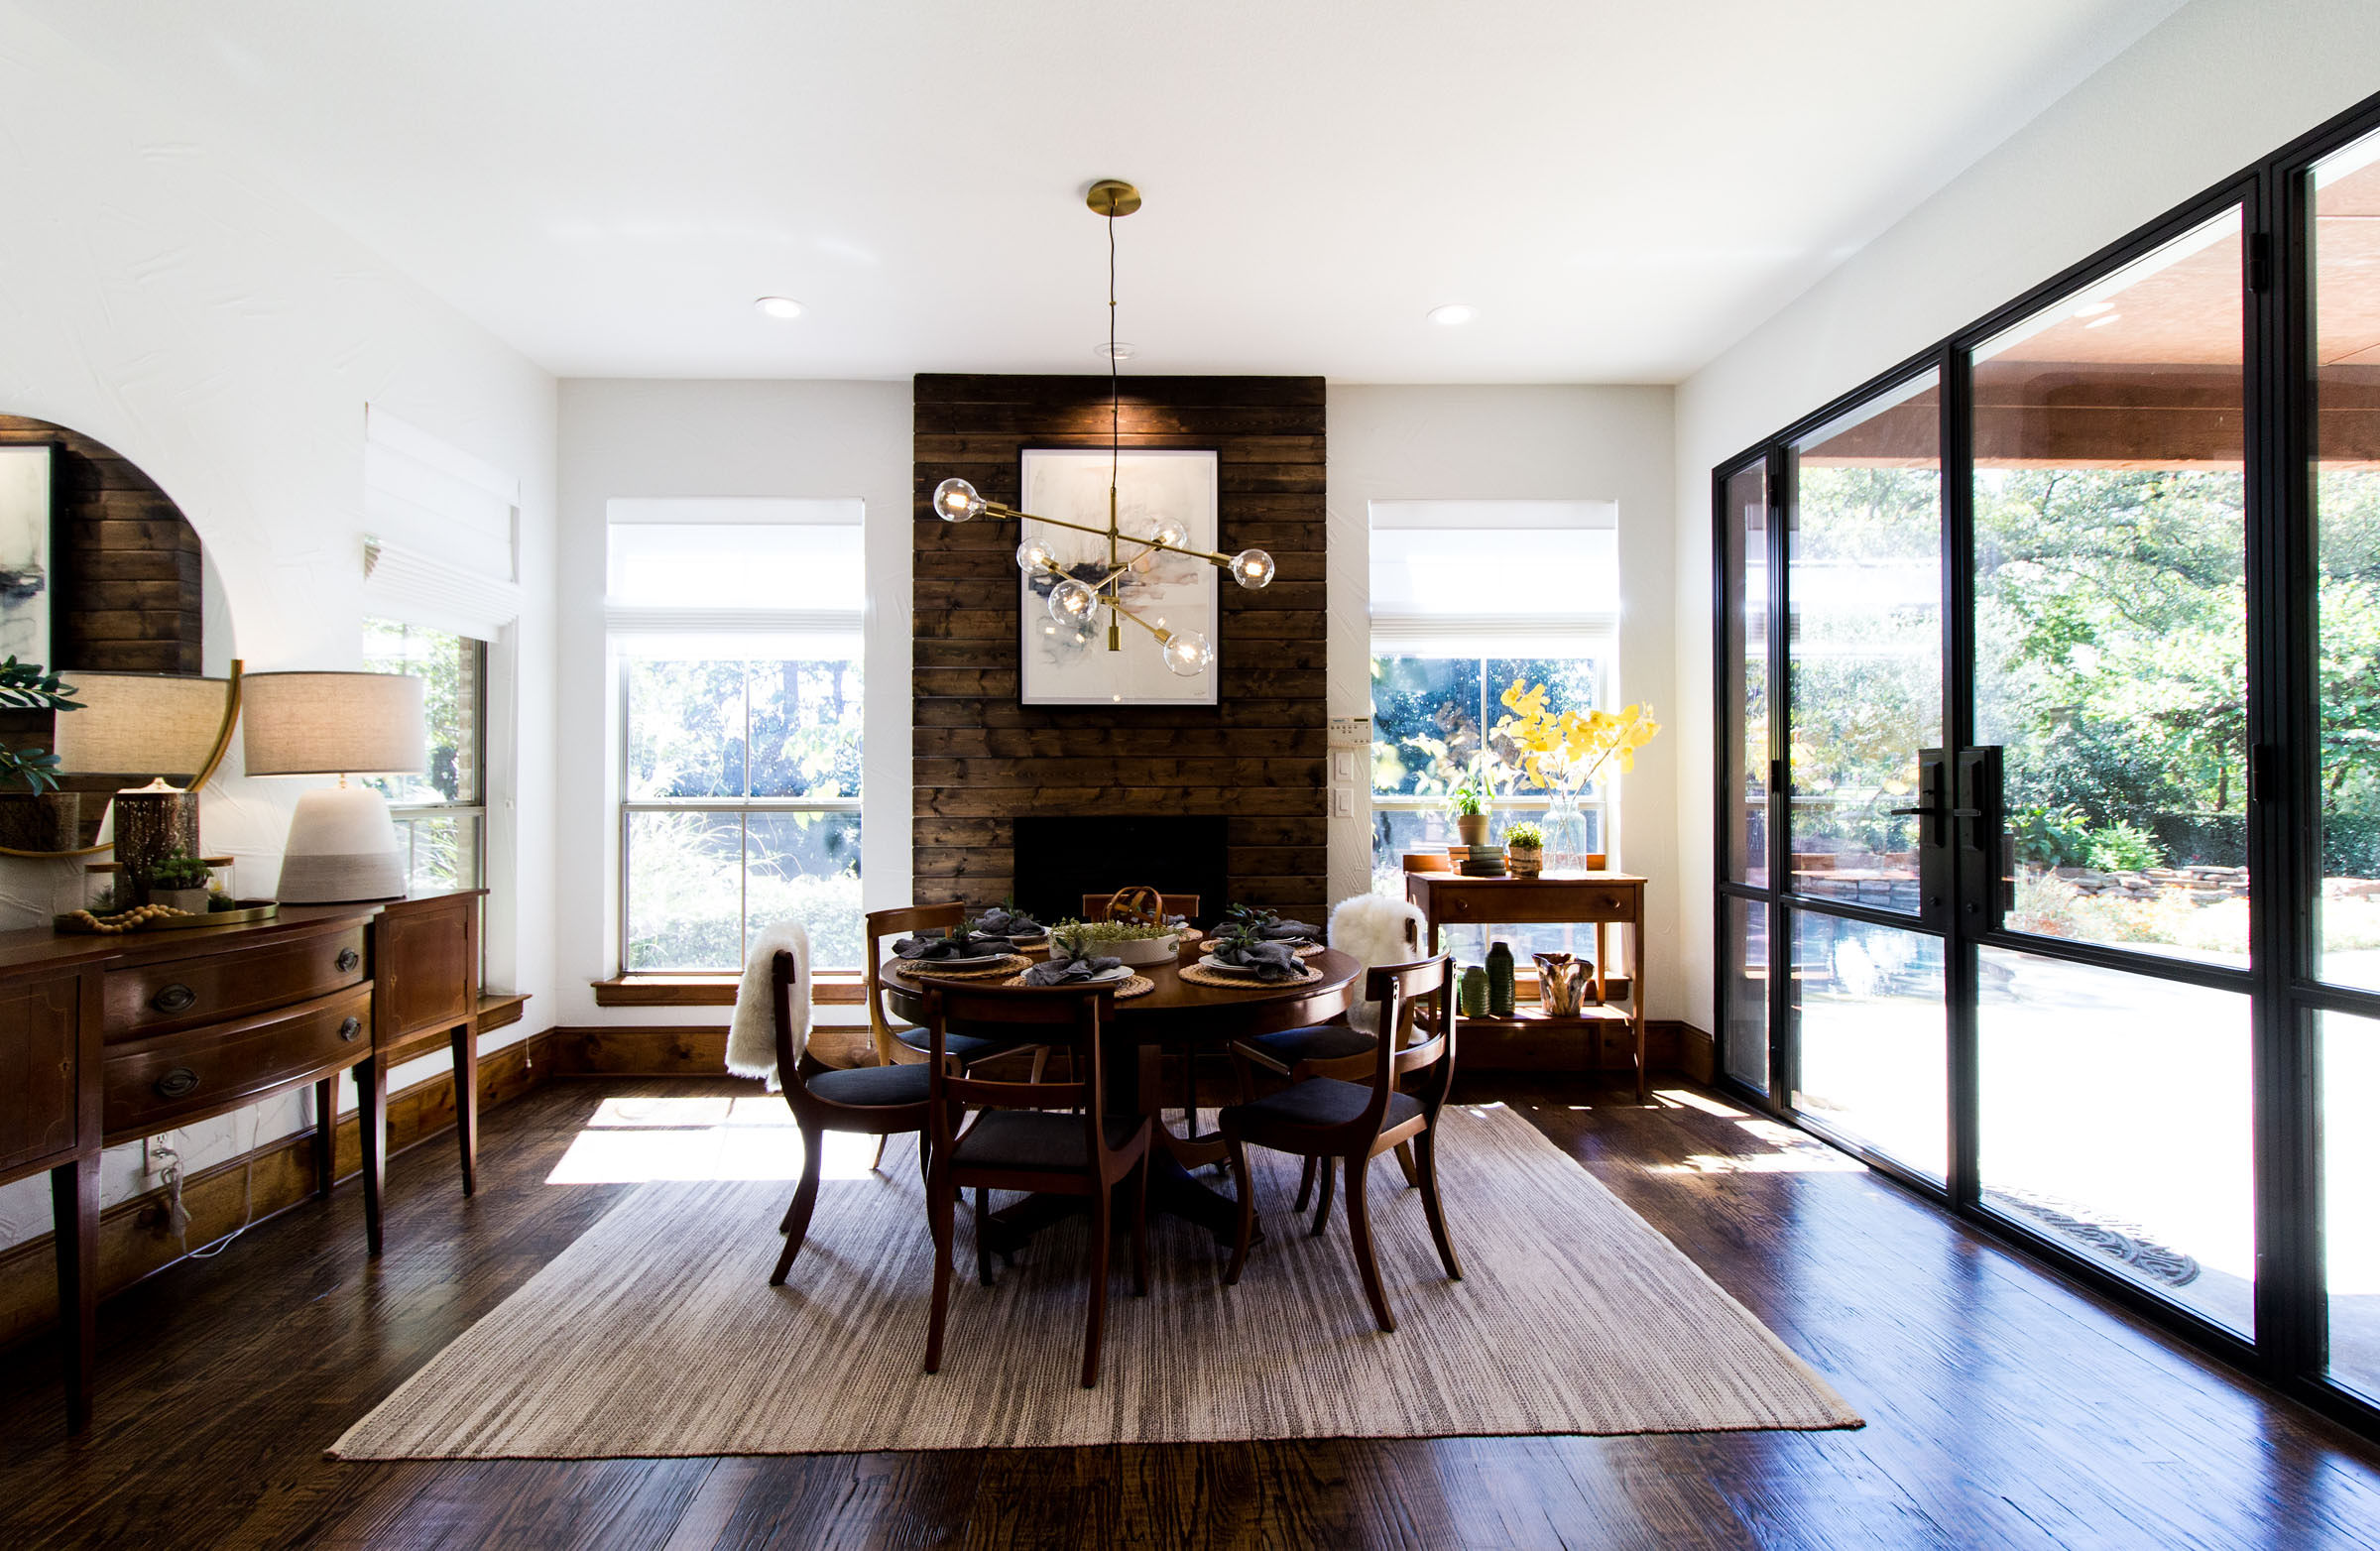 Cozy breakfast nook area with wood fireplace, iron framed patio doors, grey area rug, staged table, exposed bulb lighting